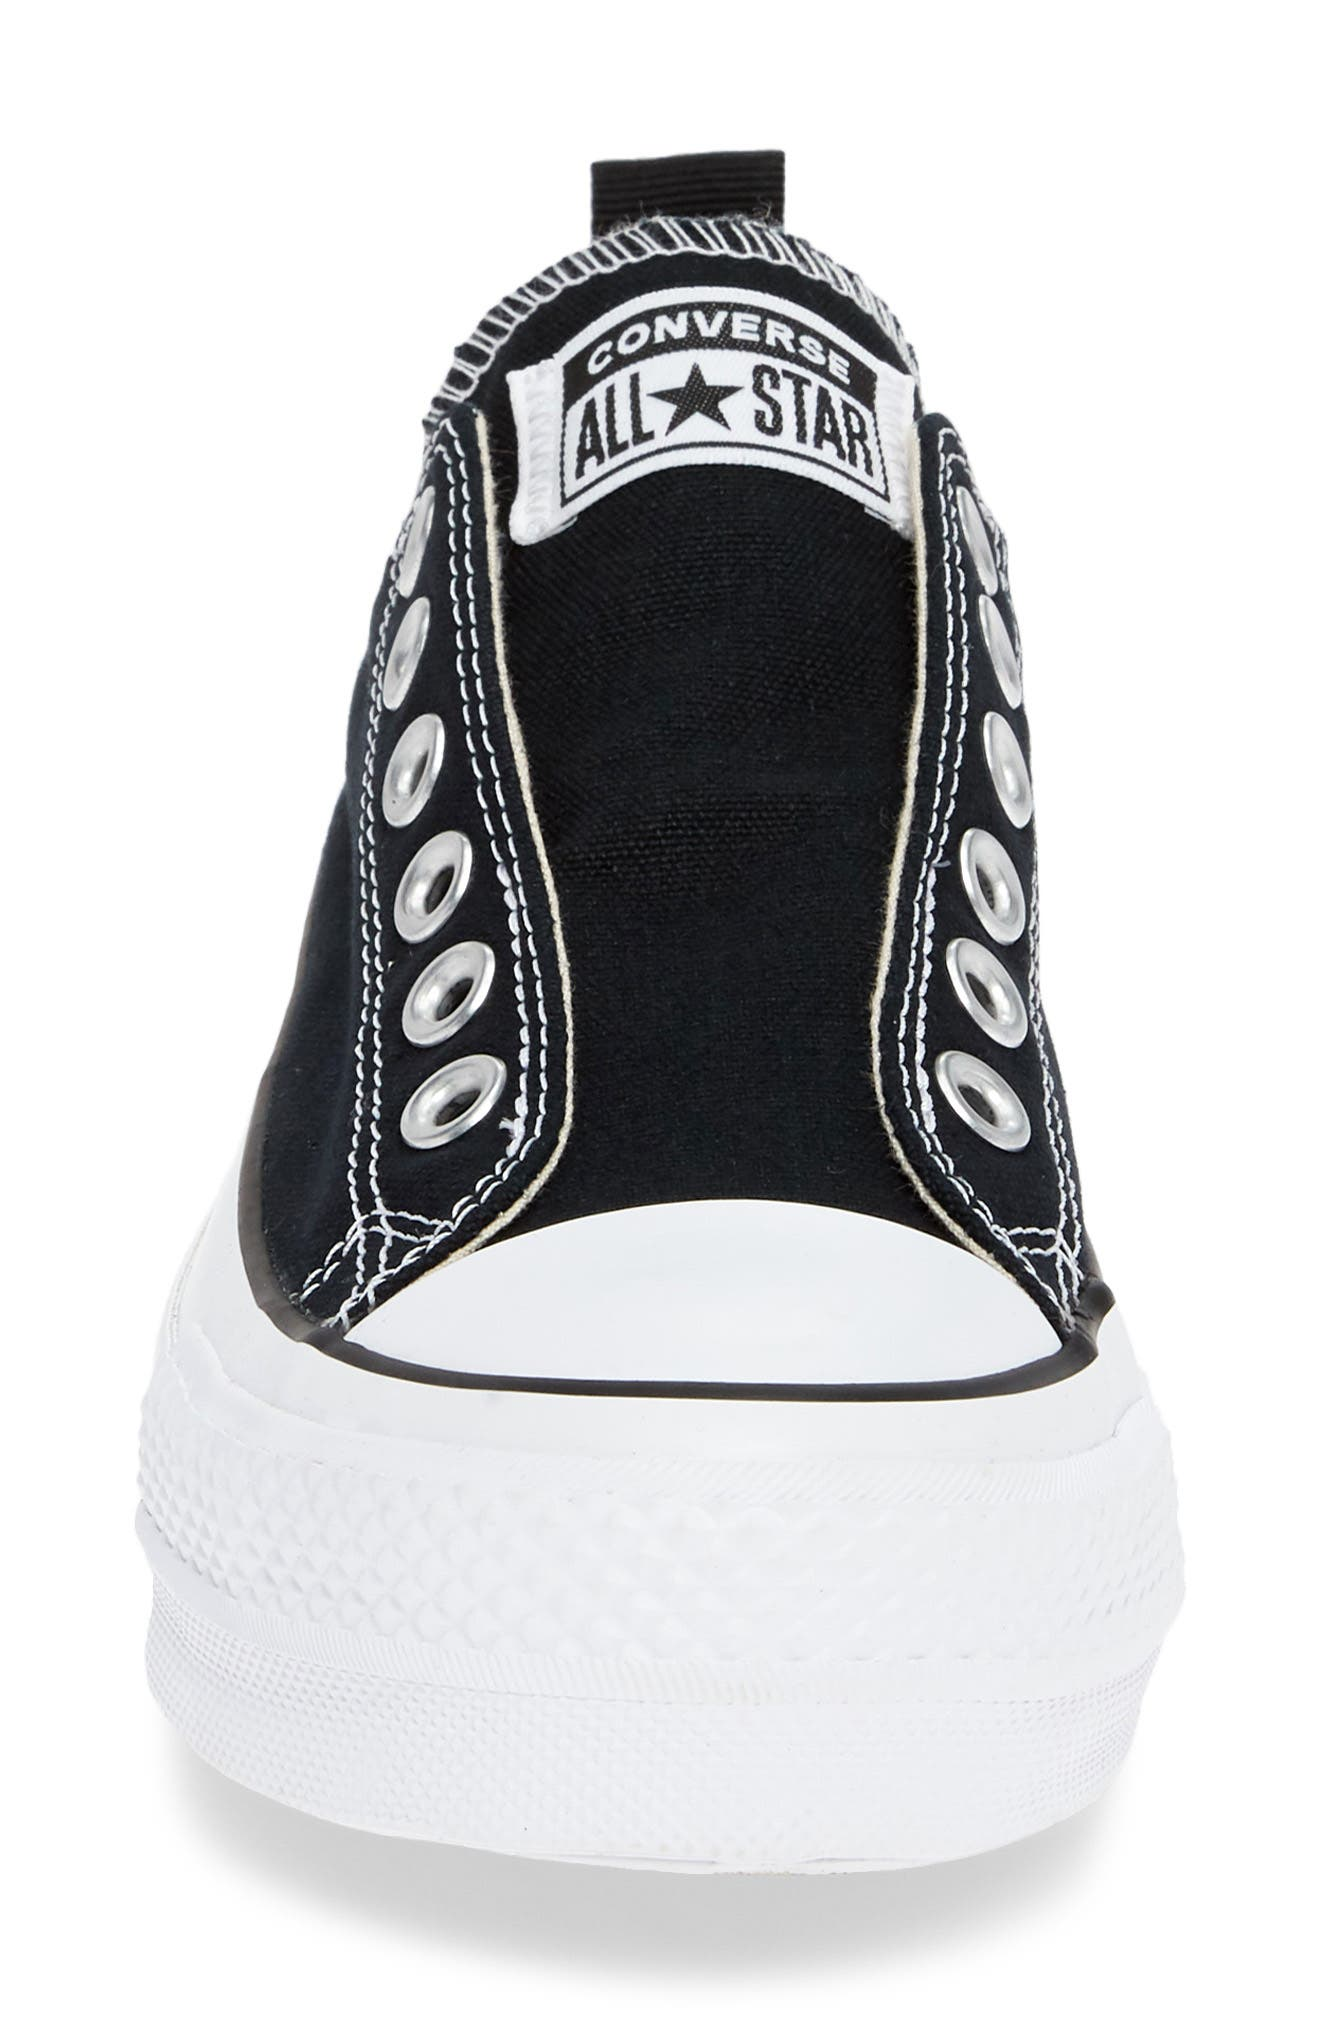 CONVERSE, Chuck Taylor<sup>®</sup> All Star<sup>®</sup> Low Top Sneaker, Alternate thumbnail 4, color, BLACK/ WHITE/ BLACK